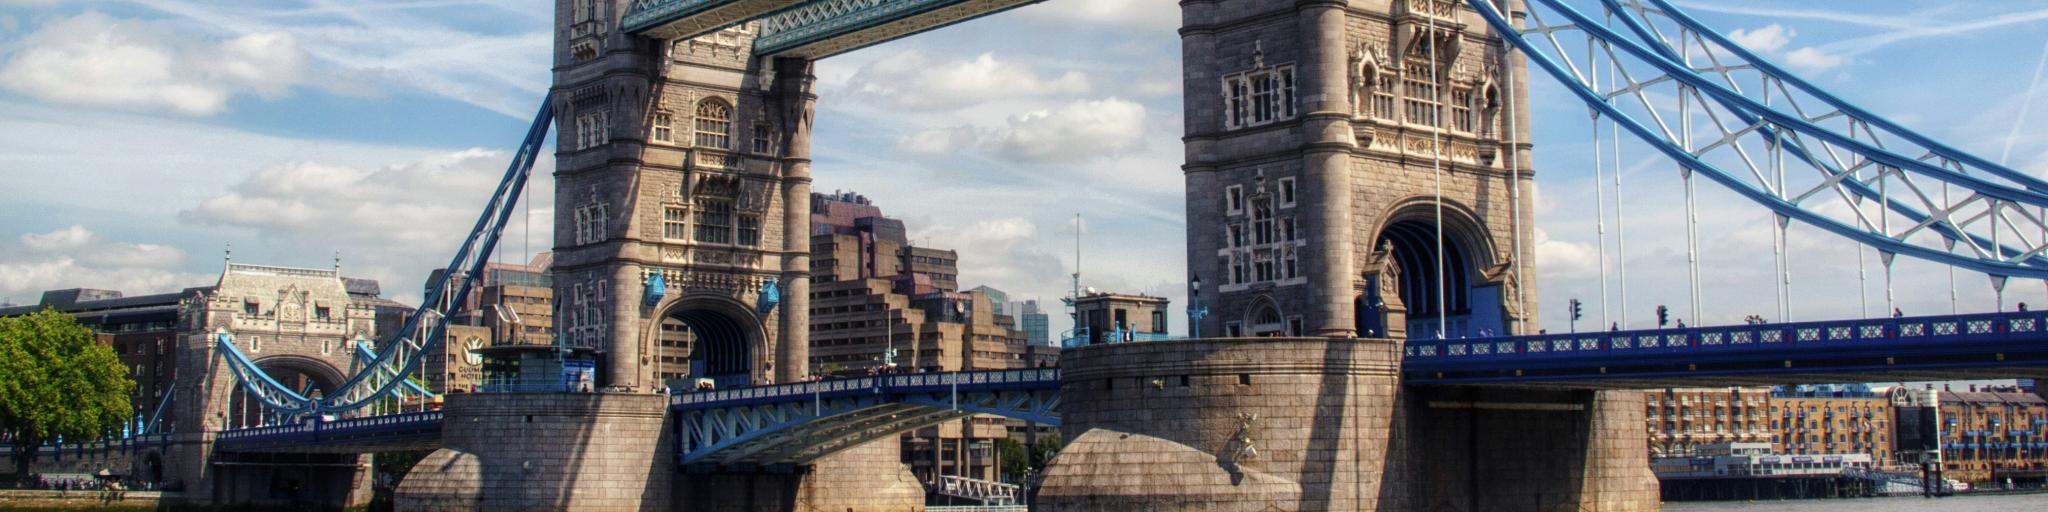 The iconic Tower Bridge is a regal London landmark that crosses the River Thames